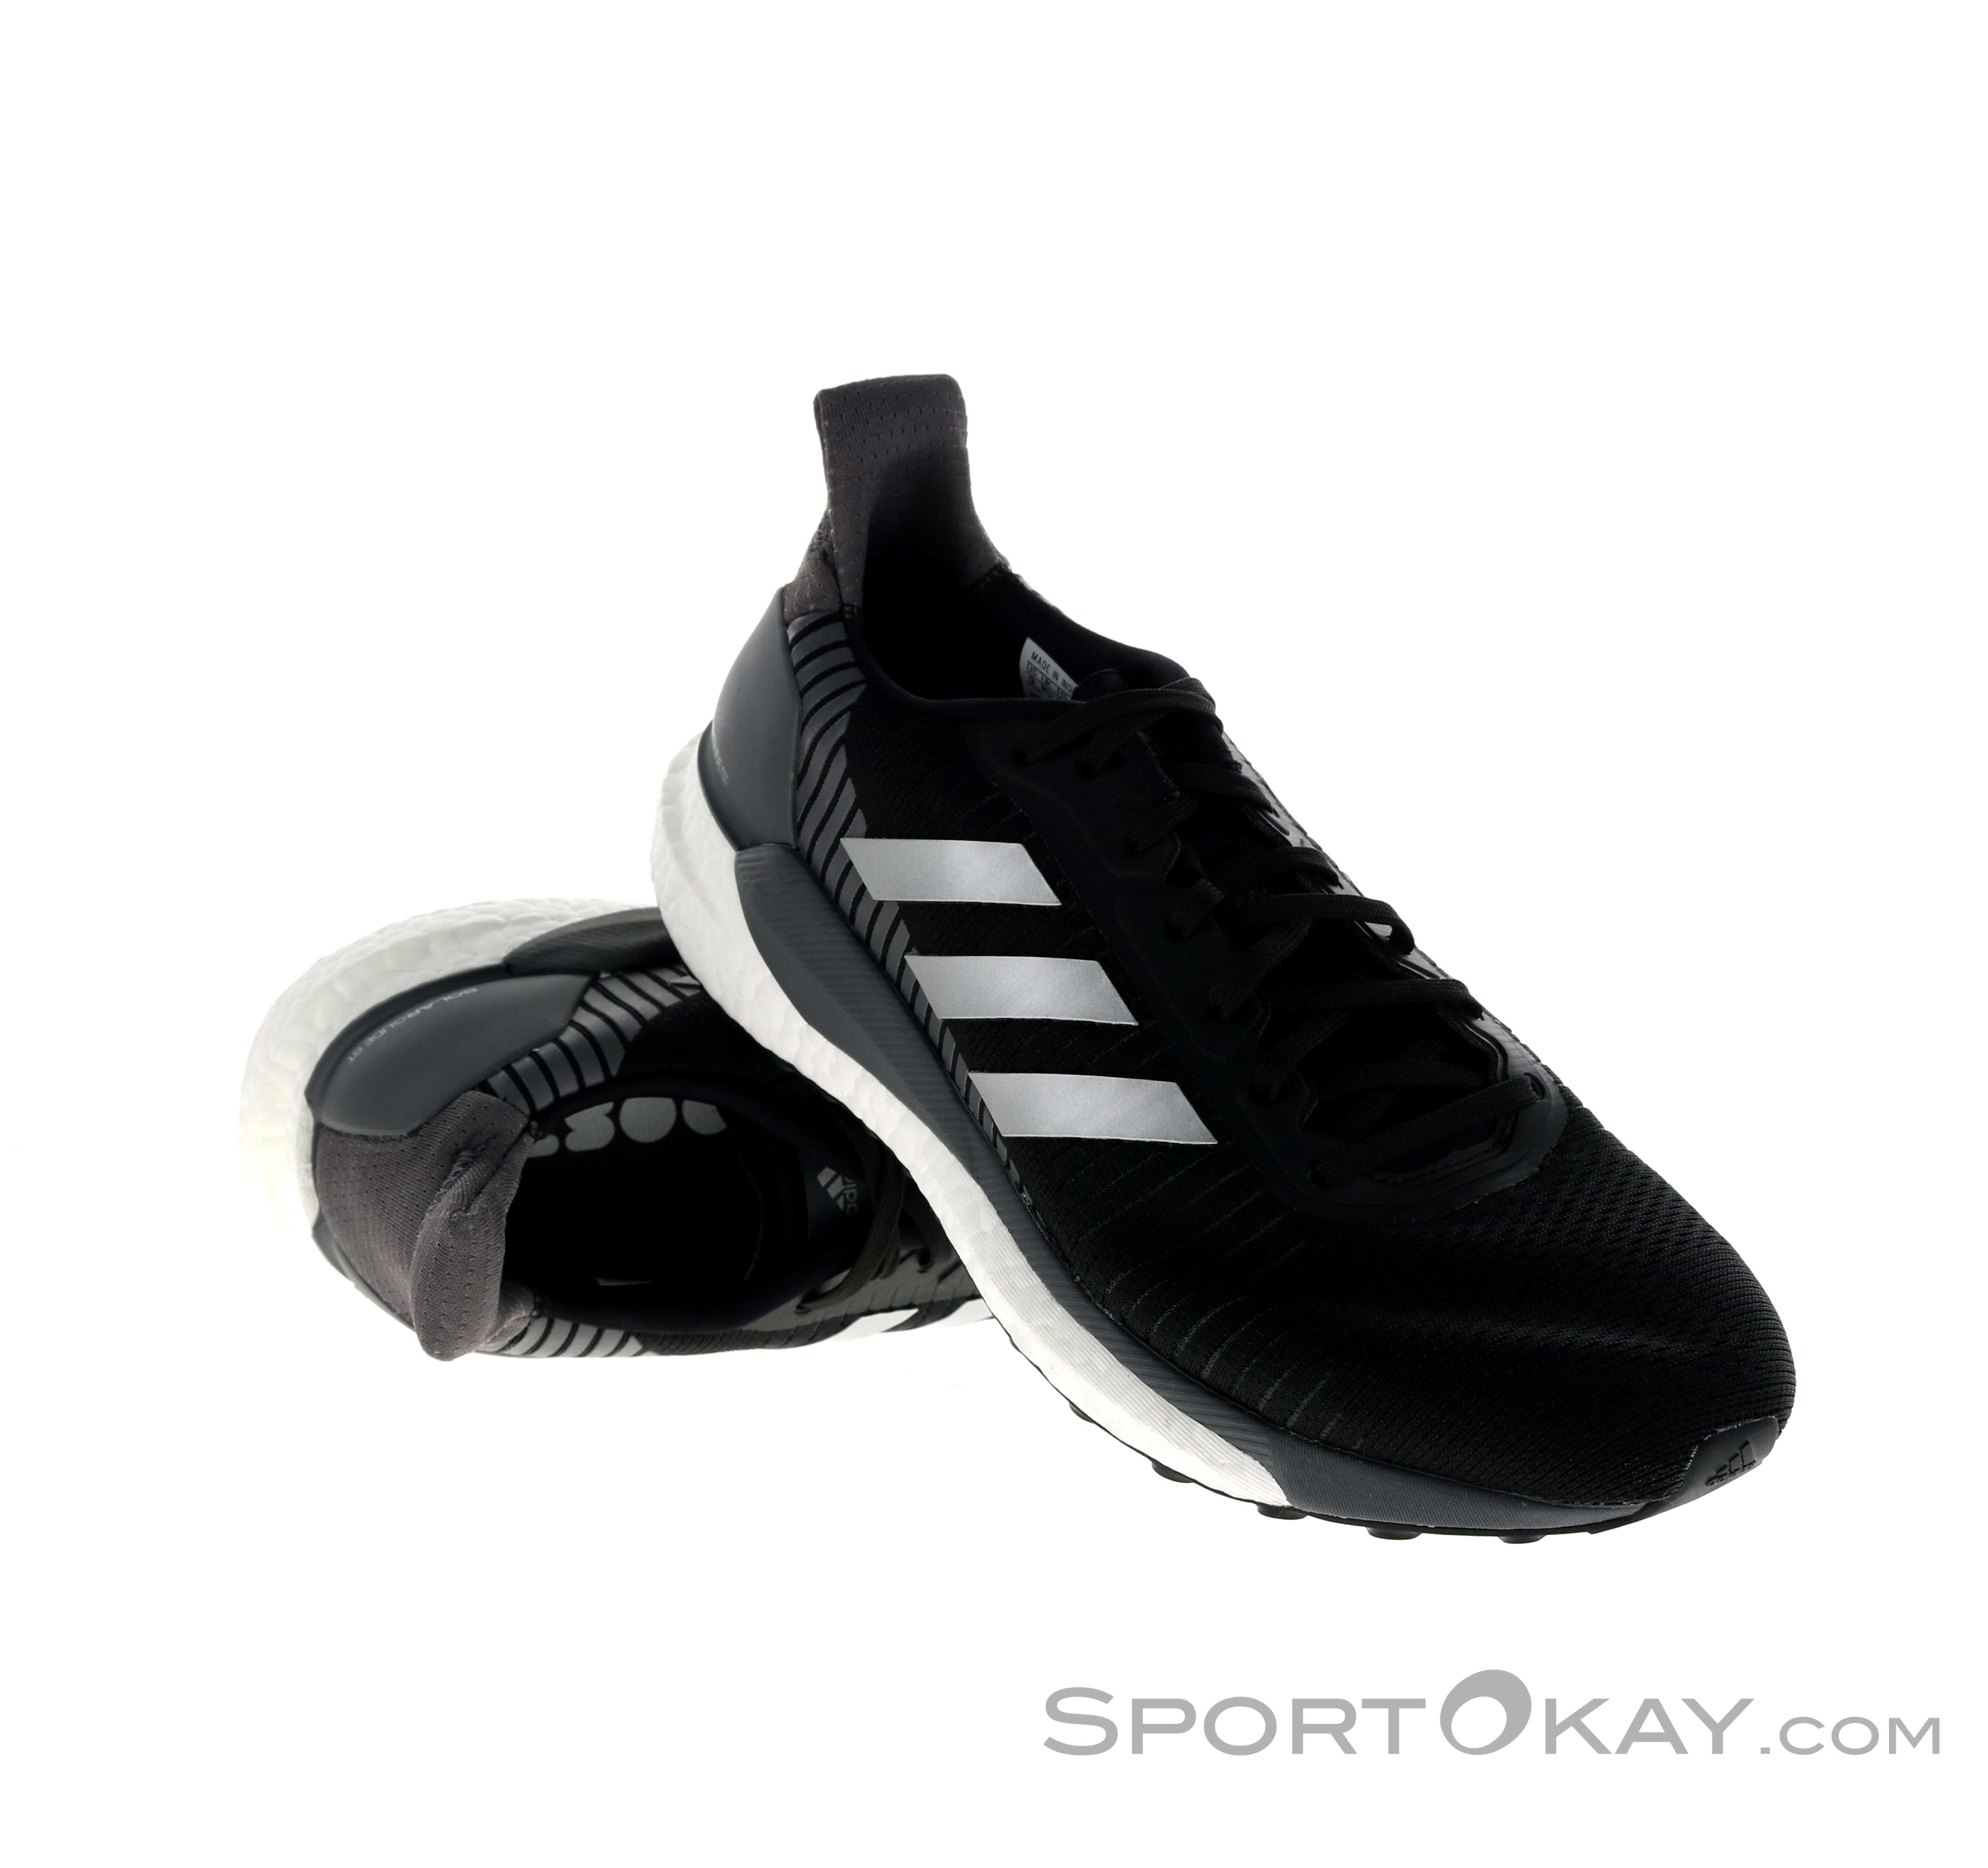 adidas adidas Solarglide ST 19 Mens Running Shoes